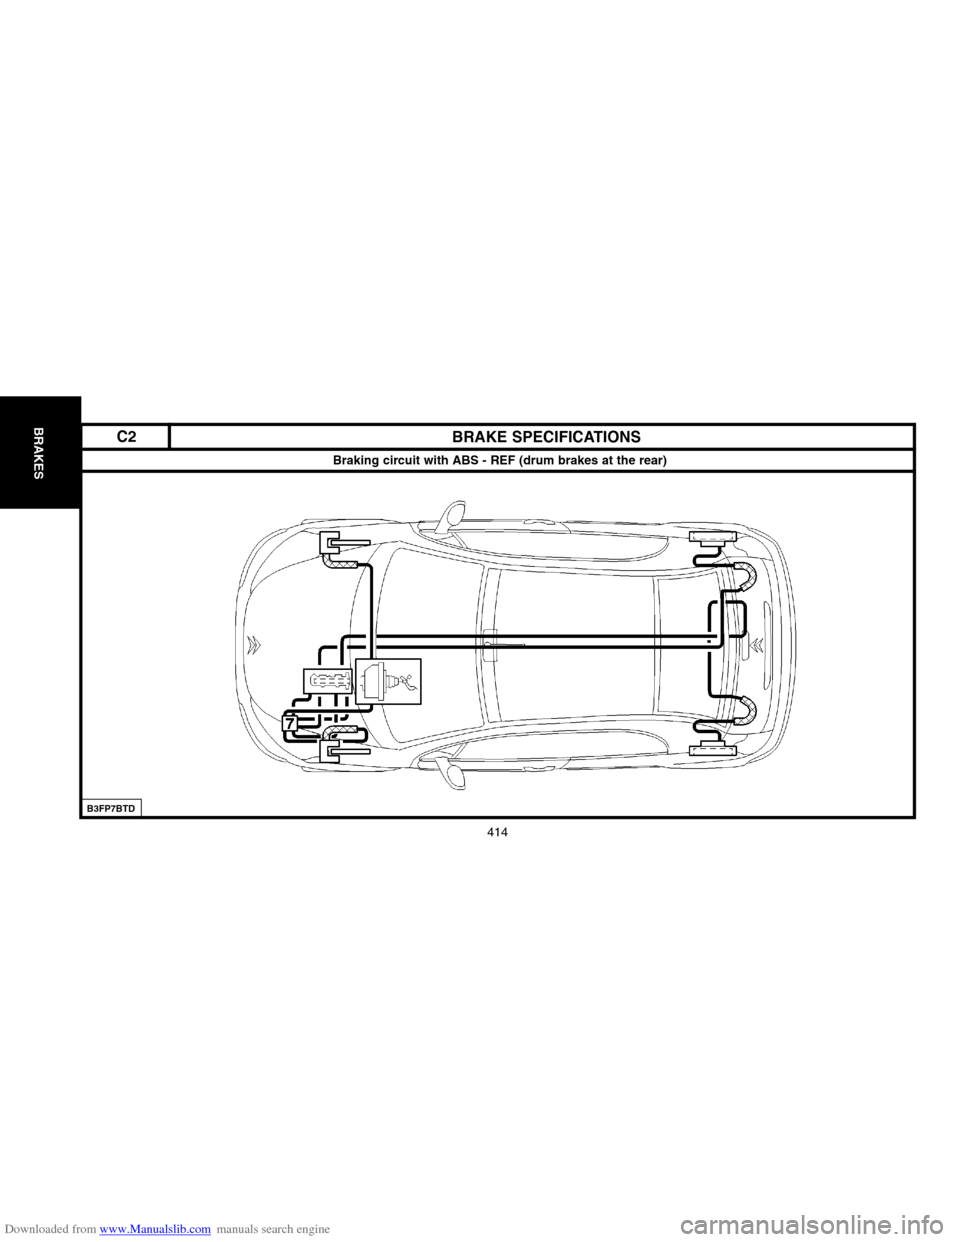 hight resolution of citroen c2 2004 1 g workshop manual page 418